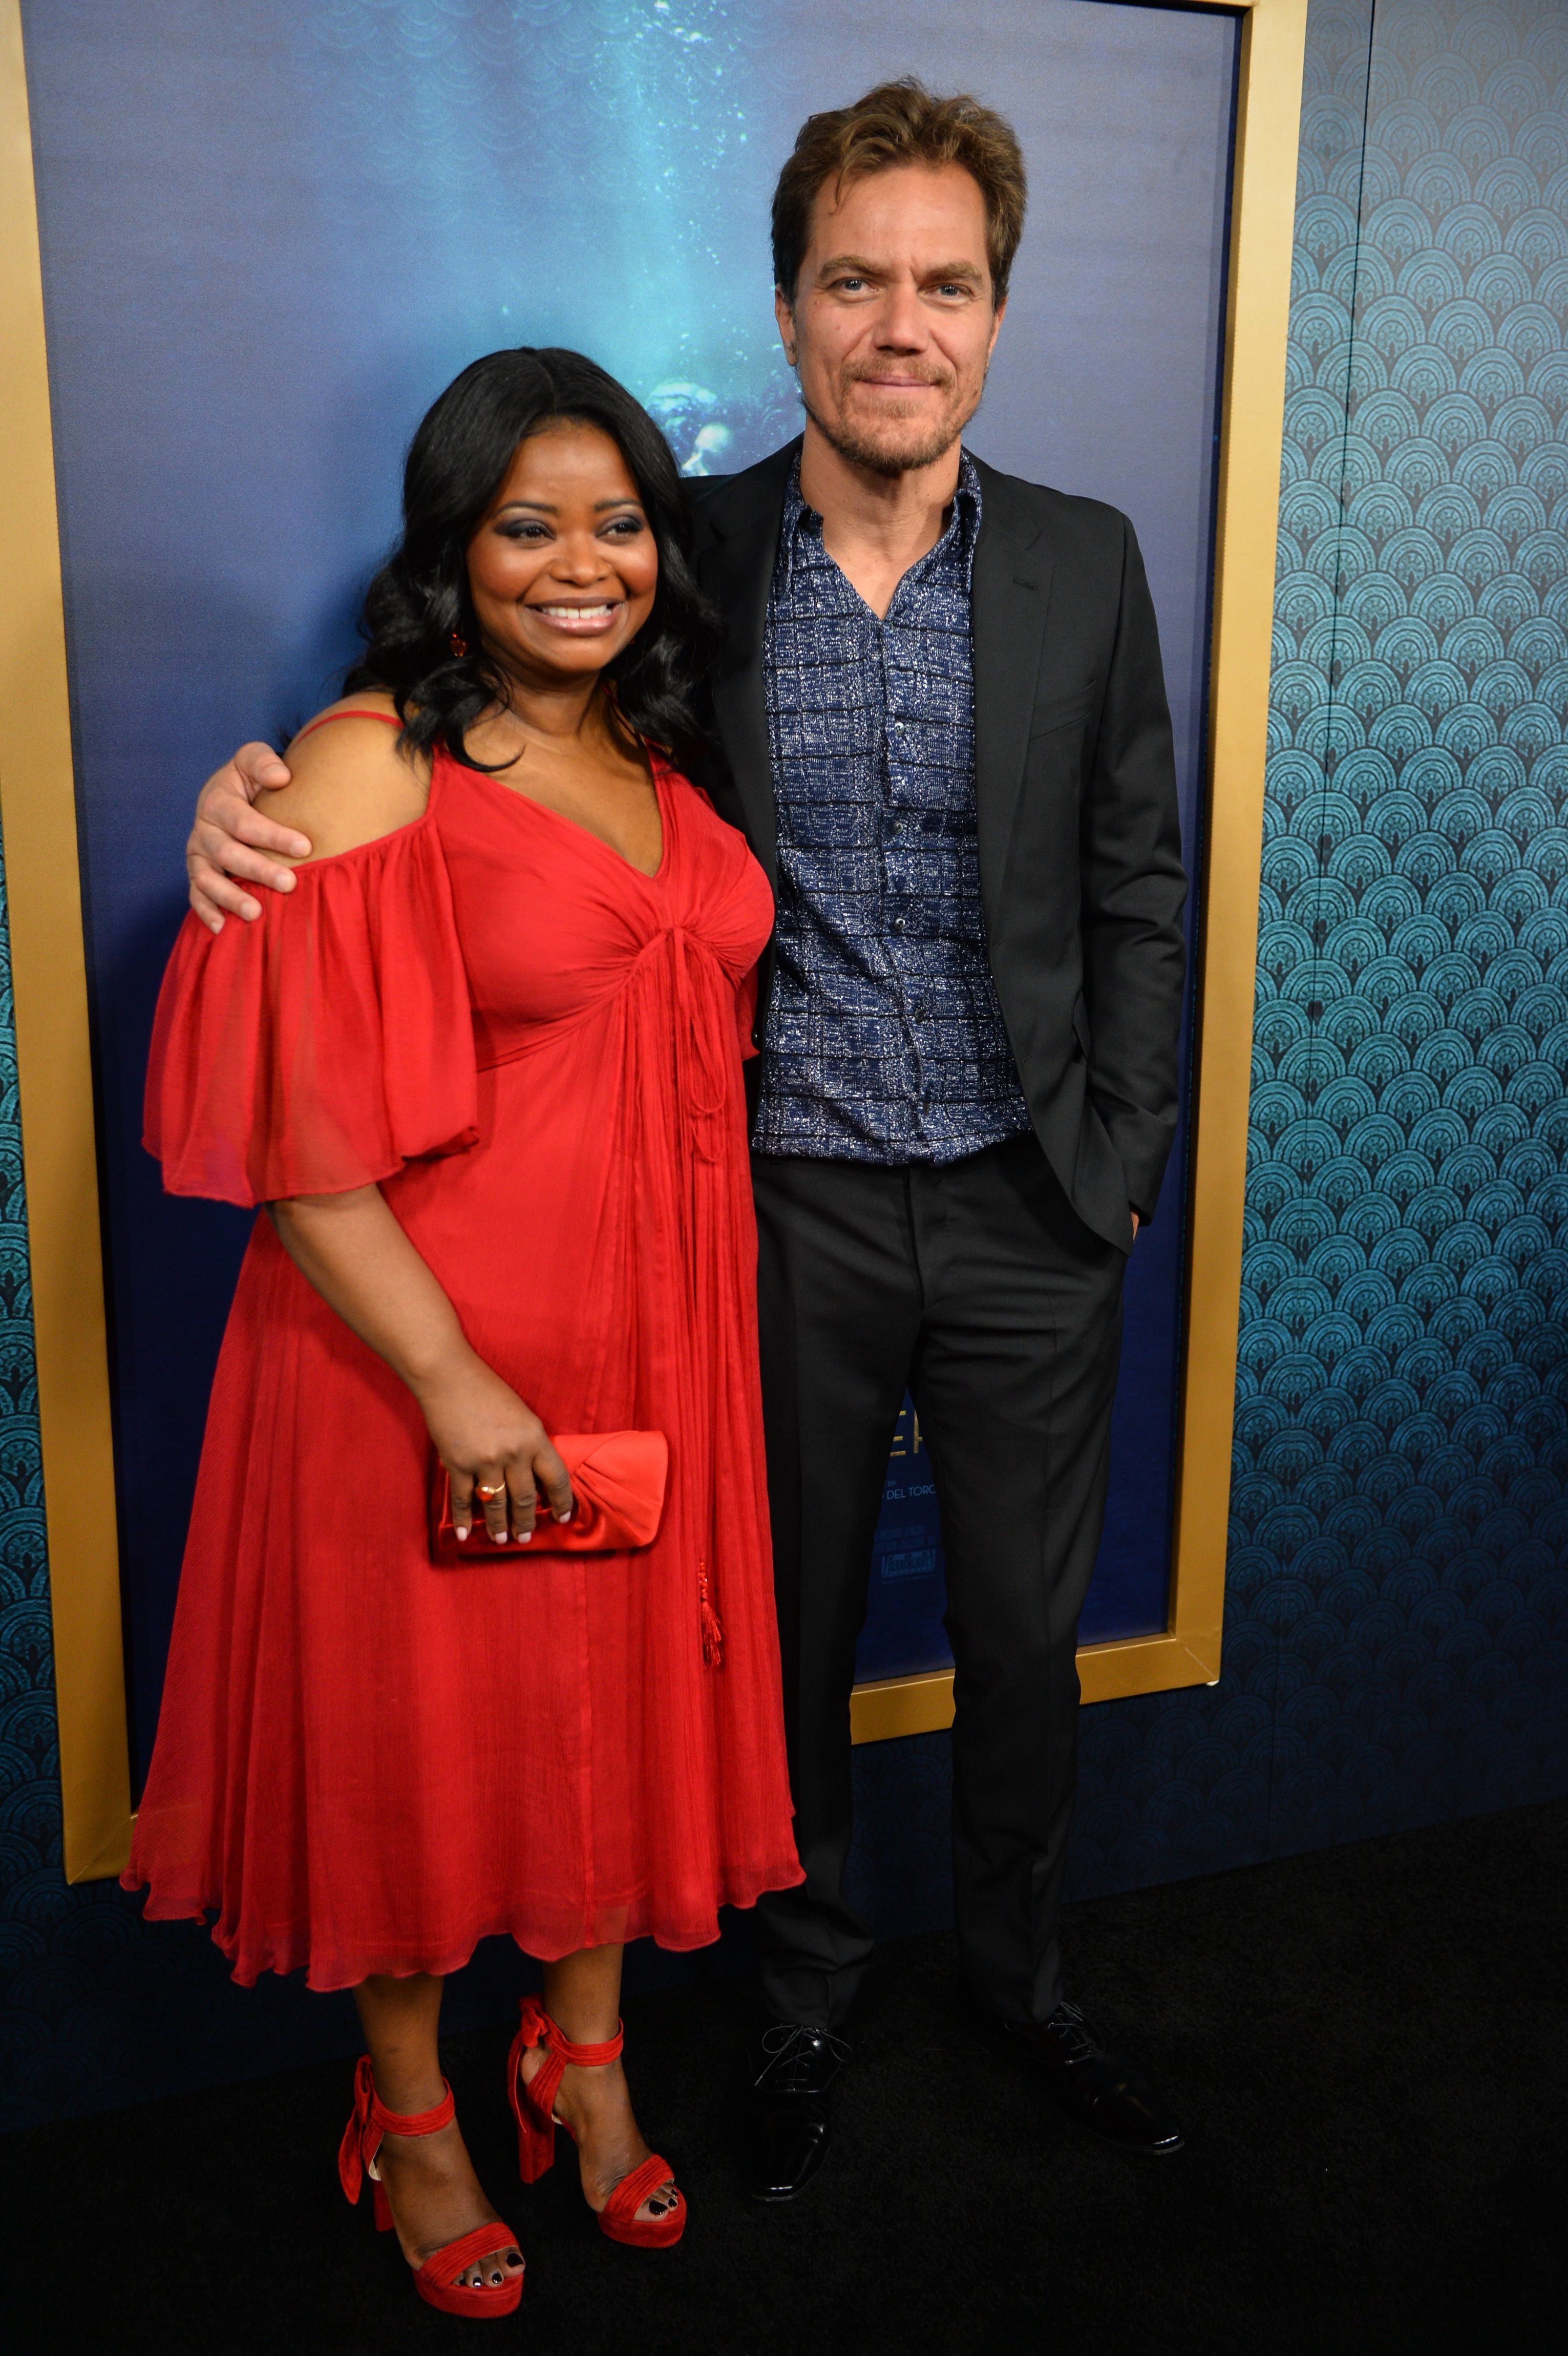 """Octavia Spencer and Michael Shannon attend """"The Shape of Water"""" premiere in Los Angeles on Nov. 15, 2017."""